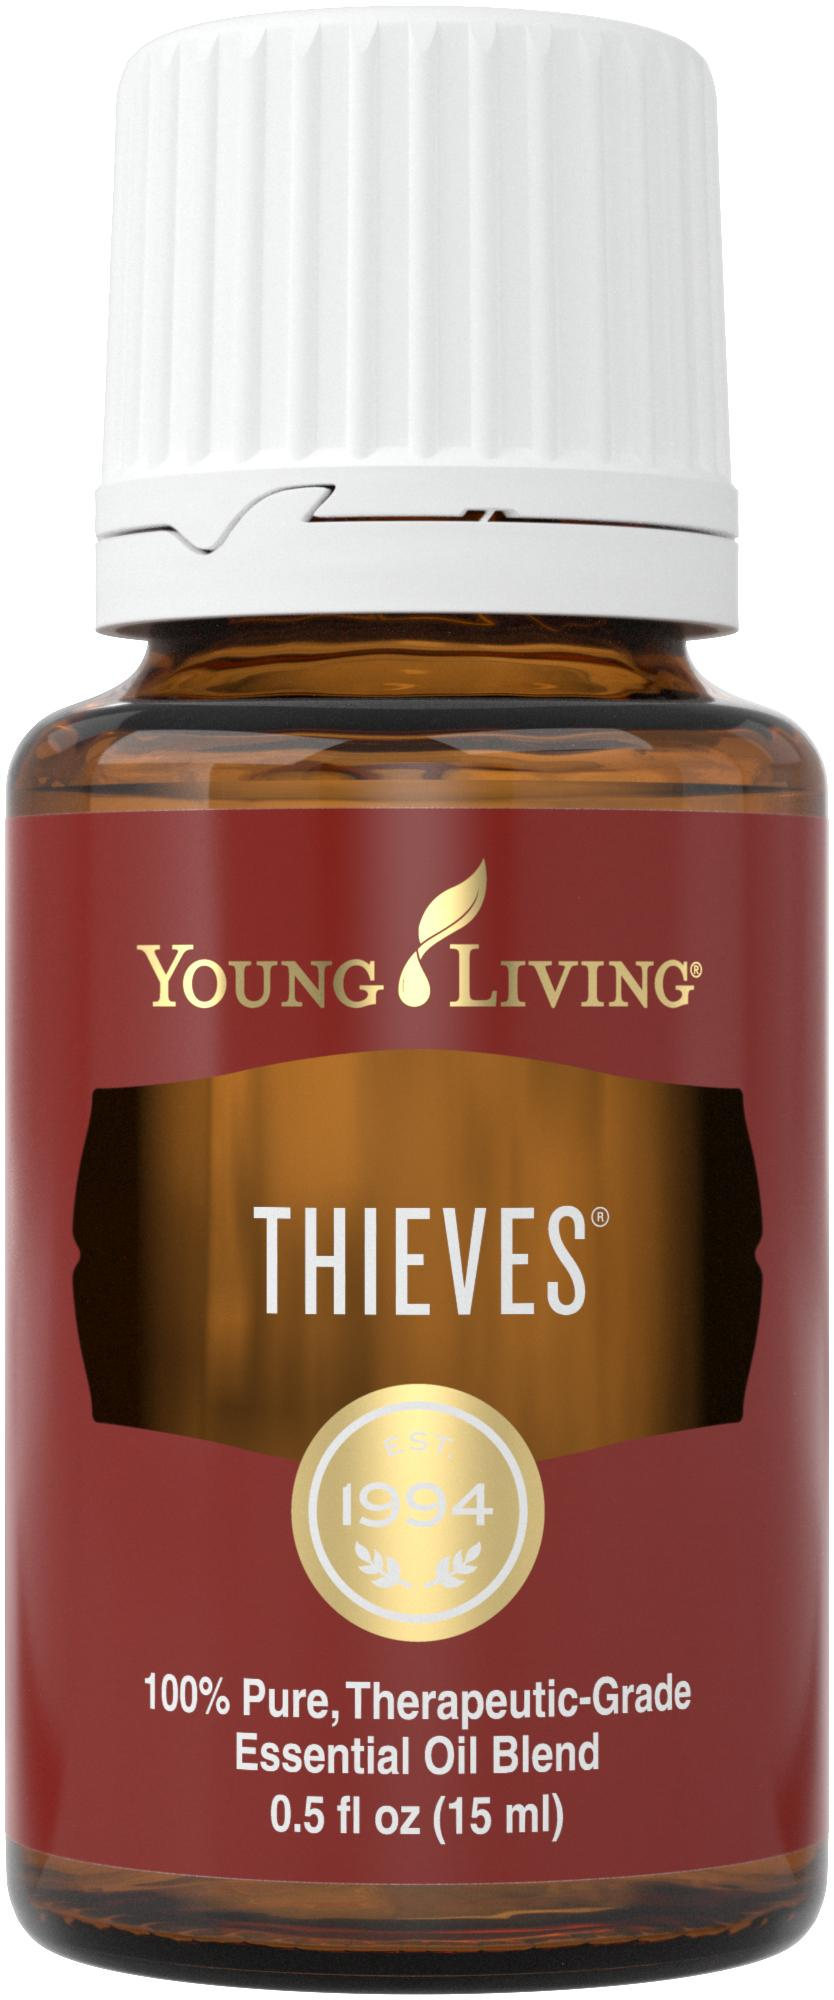 Young Living Thieves Essential Oil Blends 15ml